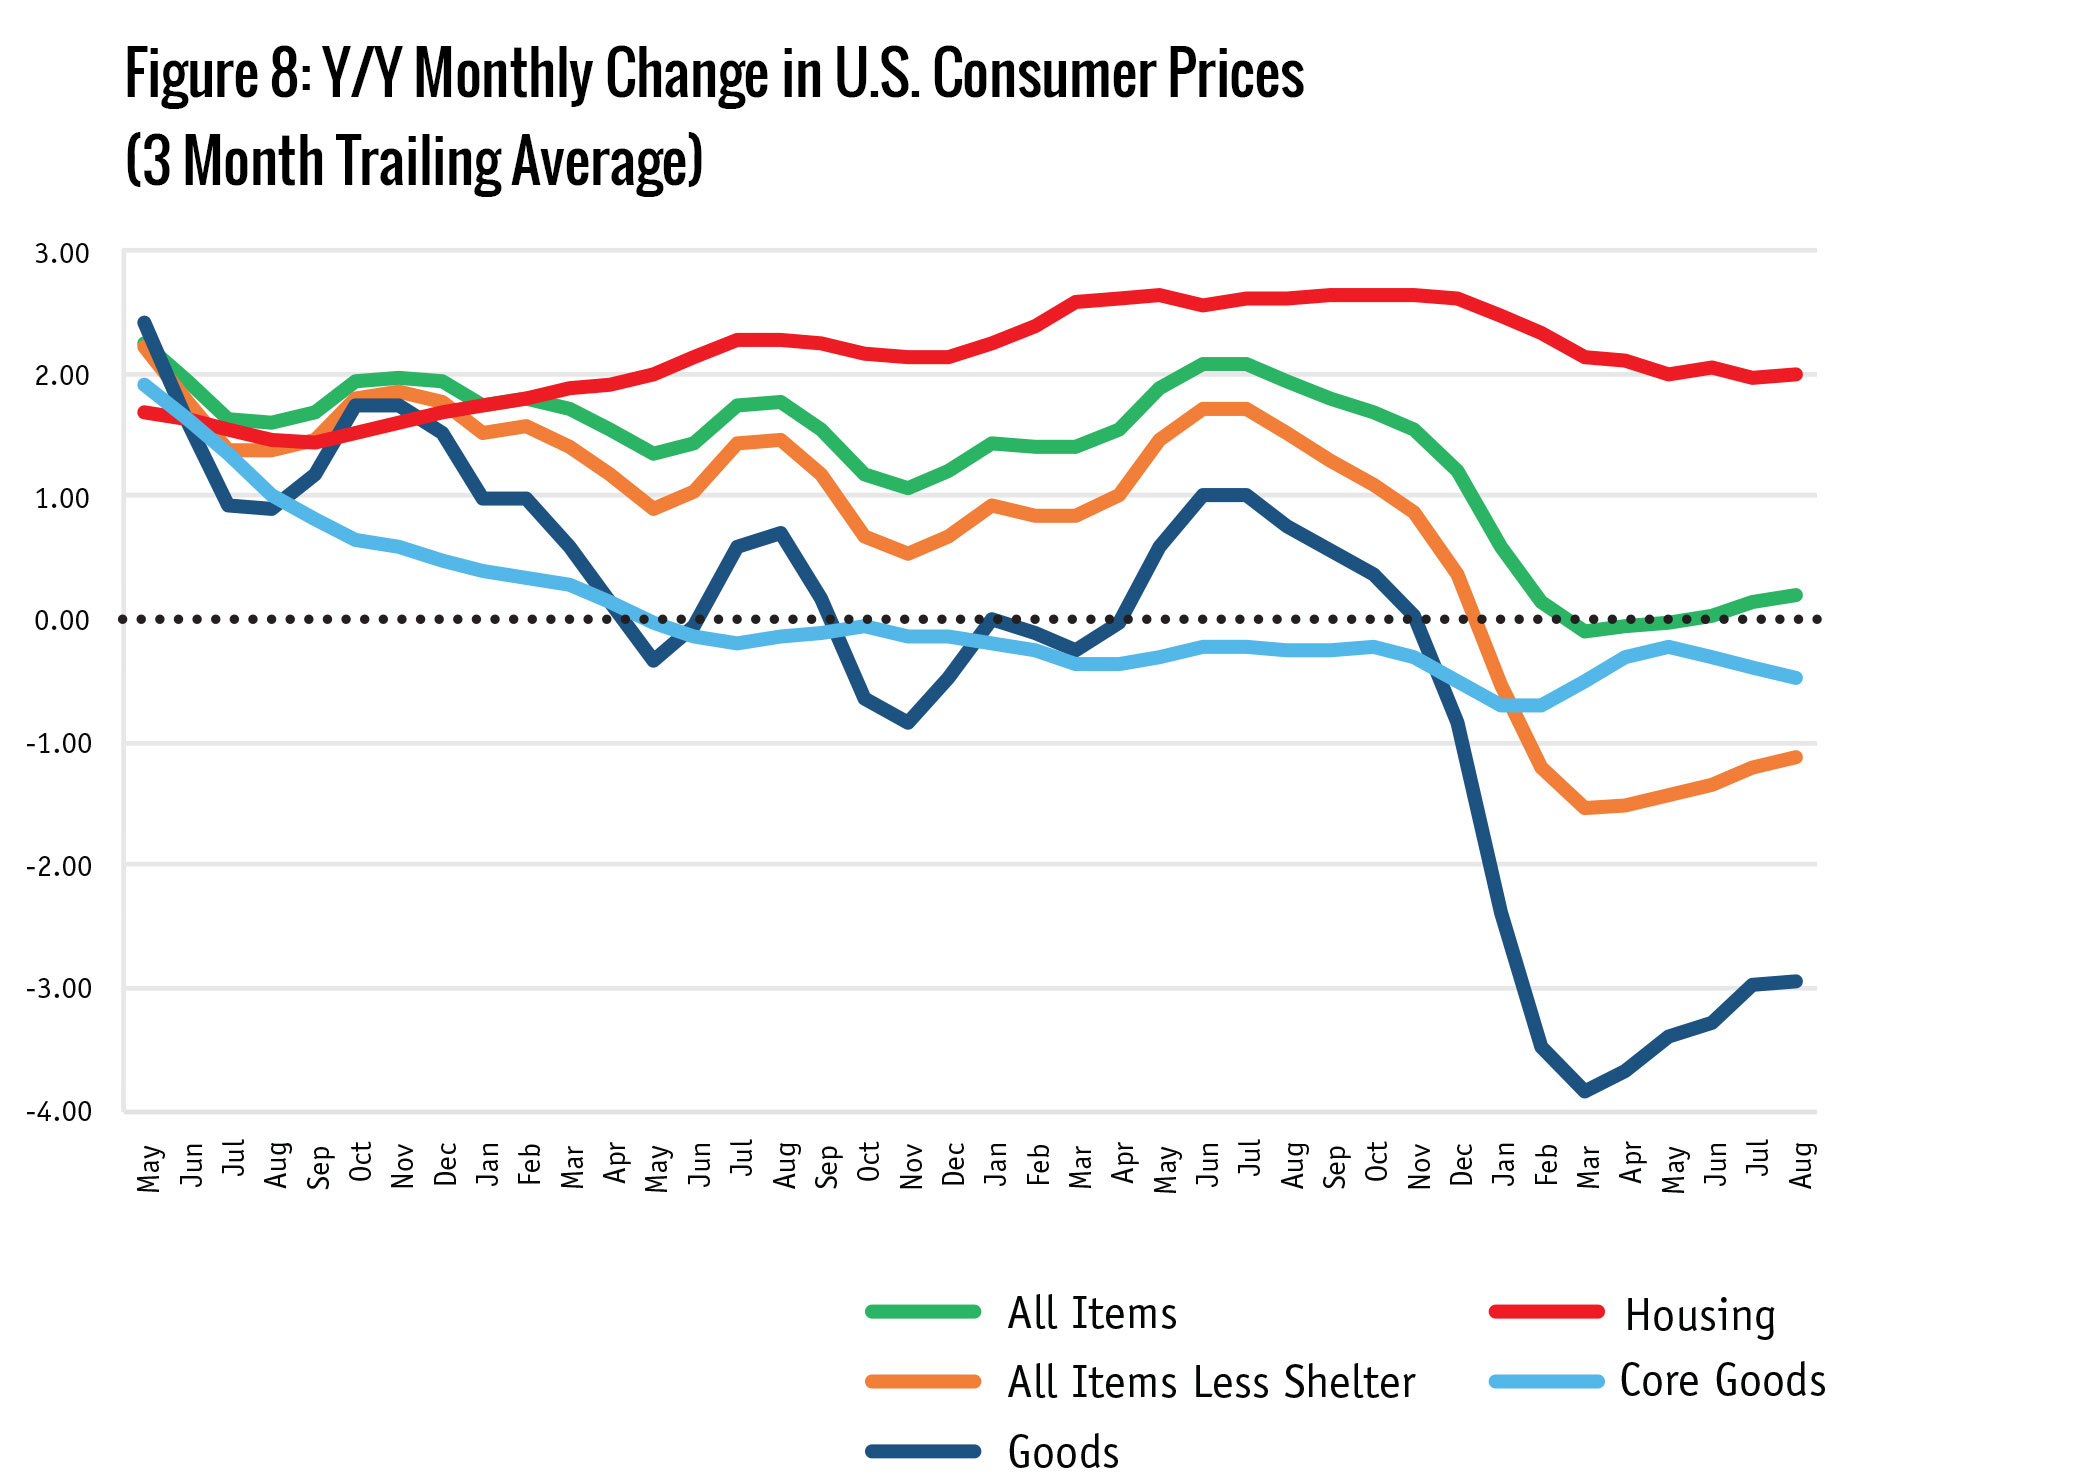 Figure 8: Y/Y Monthly Change in U.S. Consumer Prices